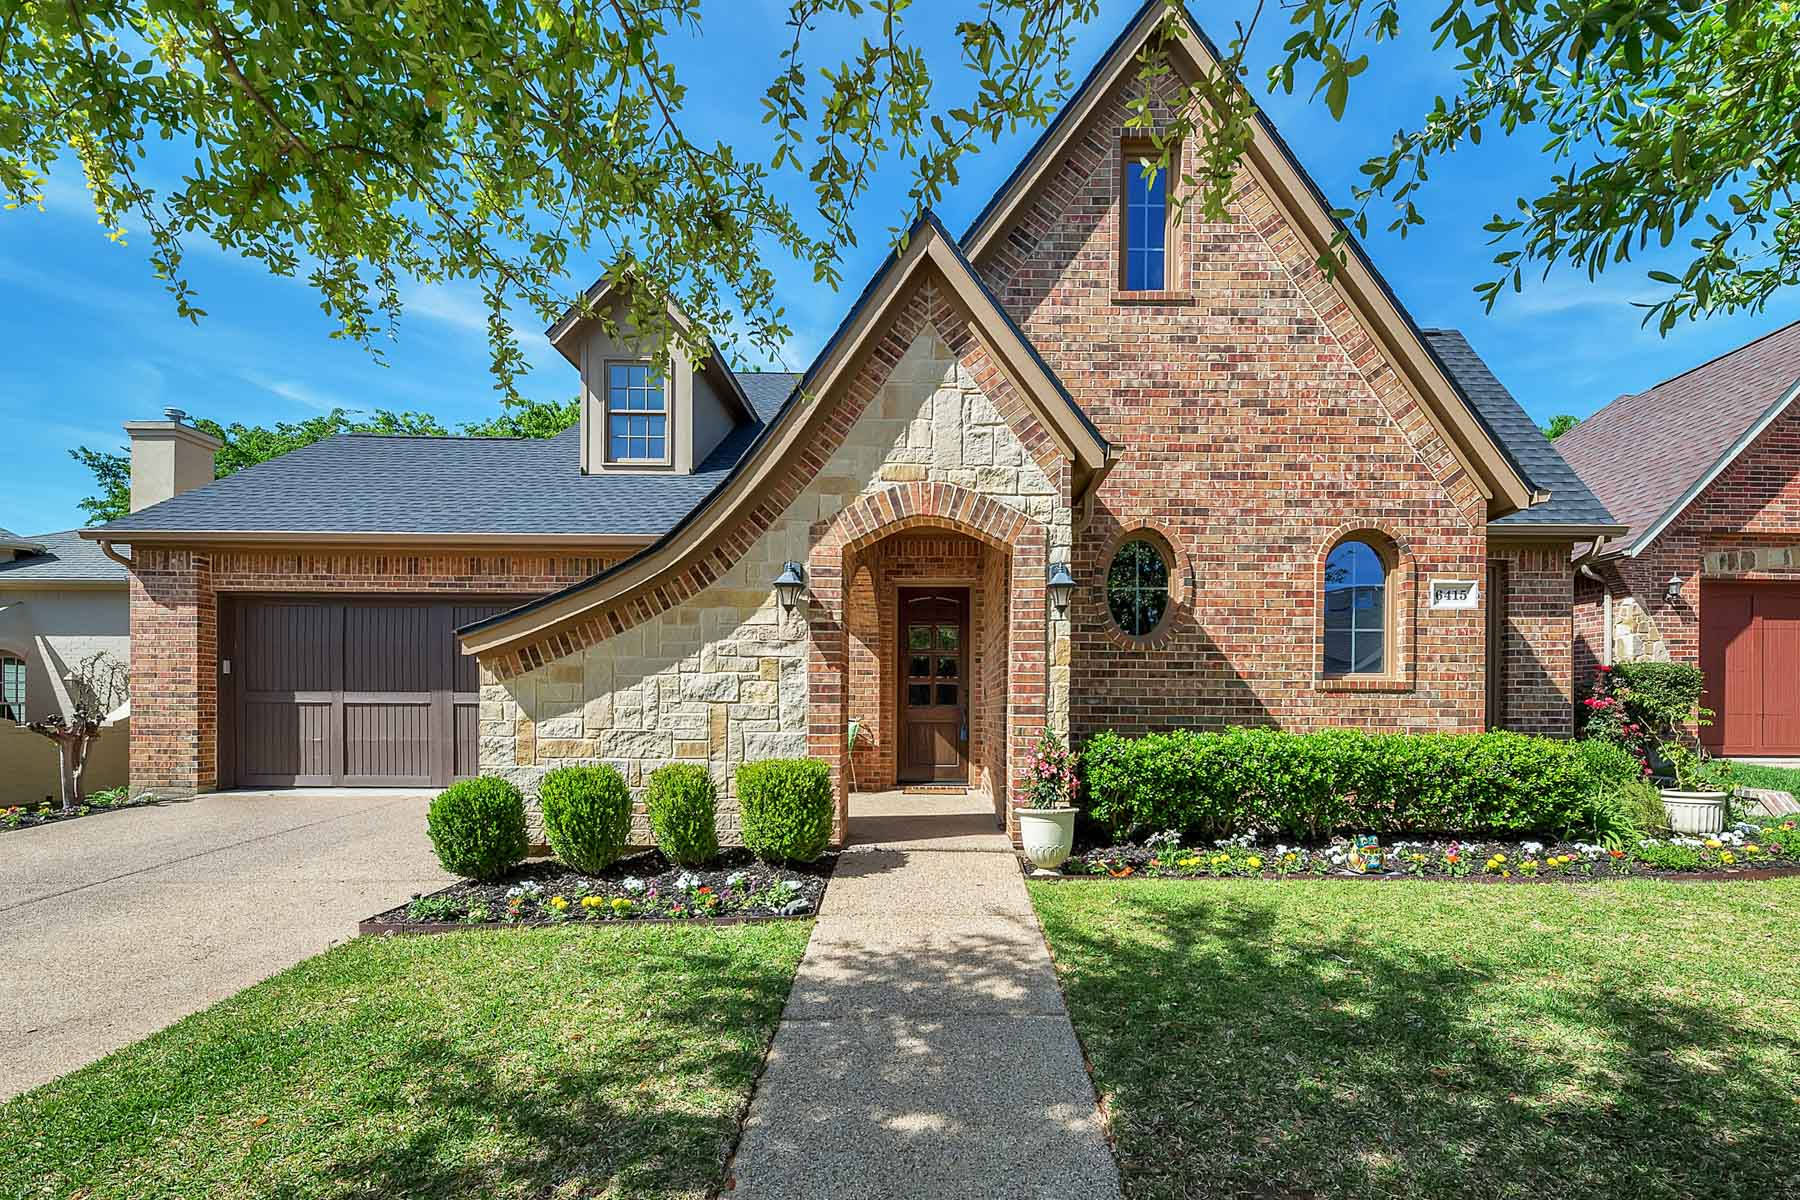 Single Family Home for Sale at 6415 Tuscany Park Dr, Arlington Arlington, Texas, 76016 United States